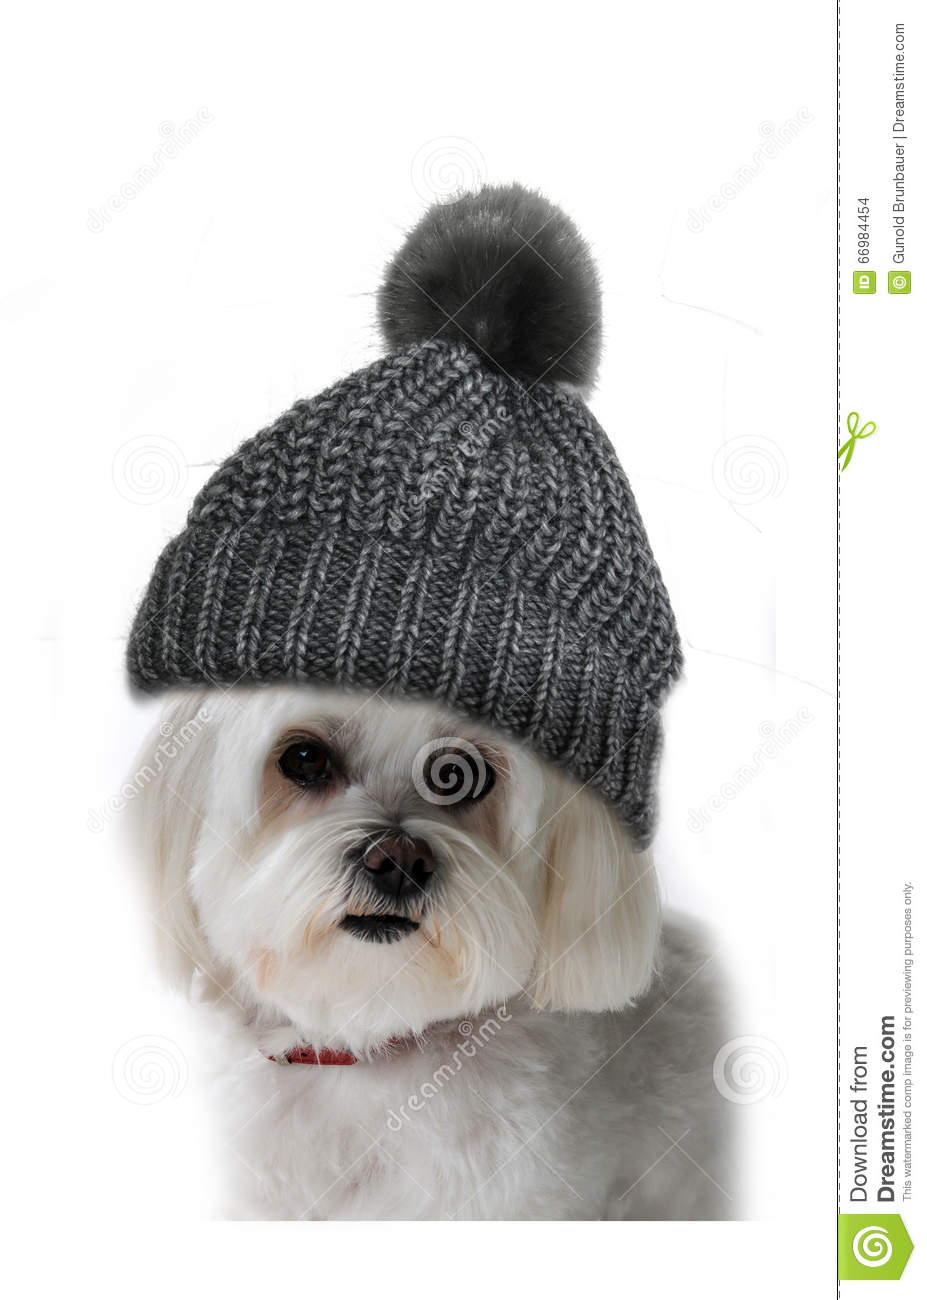 Maltese Dog Knitting Pattern : Maltese Dog With Bobble Hat Stock Photo - Image: 66984454